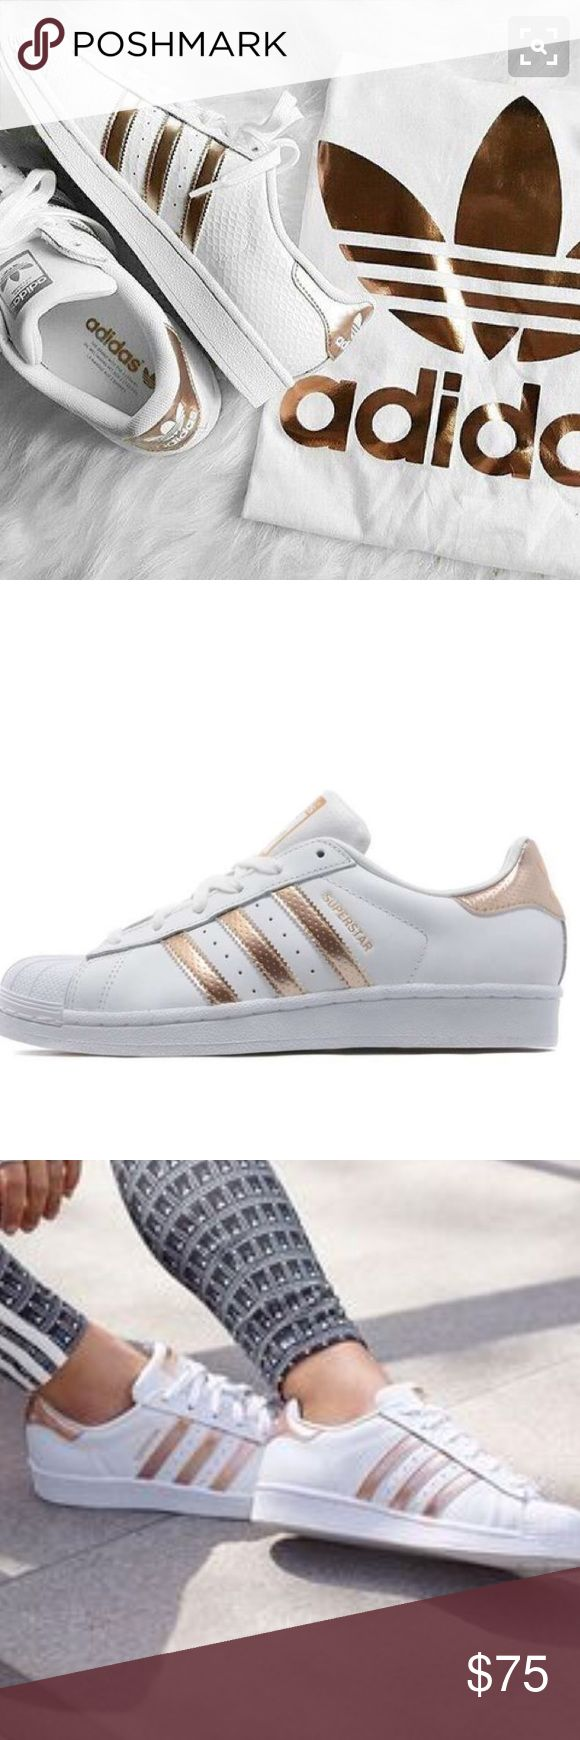 Addidas Rose Gold Superstar Shine bright like a superstar in these gorgeous rose gold sneakers. ✨Brand new, never worn. ✨Perfect for a casual chic look. ✨Listing is for sneakers only. ✨Shoes reflect 2nd and 3rd pic. ✨ Feel free to make an offer! Adidas Shoes Sneakers